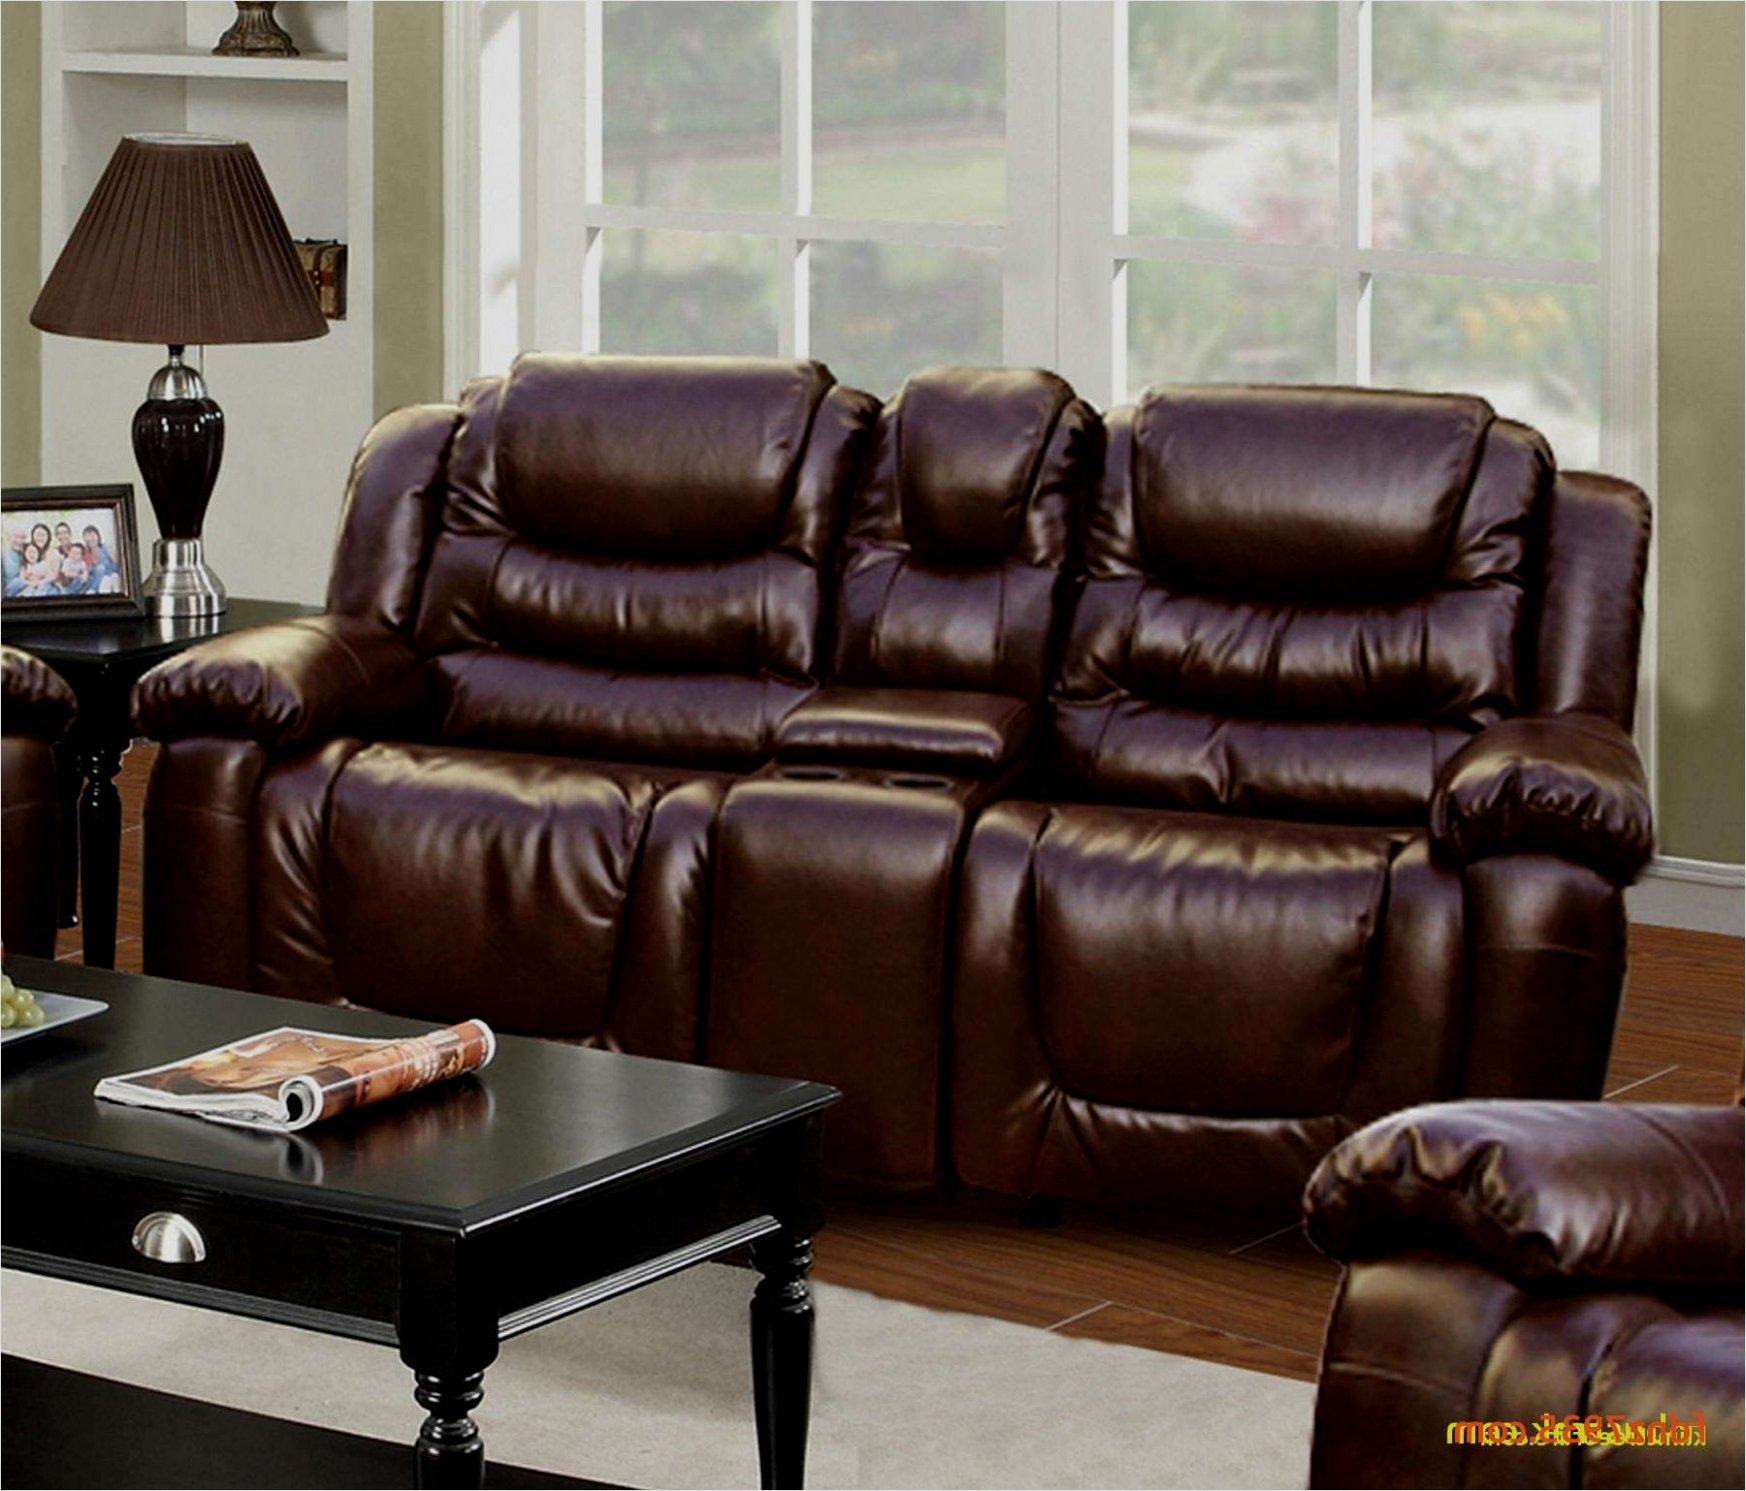 Sofa Marron Chocolate O2d5 sofa Marron Chocolate Bello Chocolate Brown Leather sofa Fresh